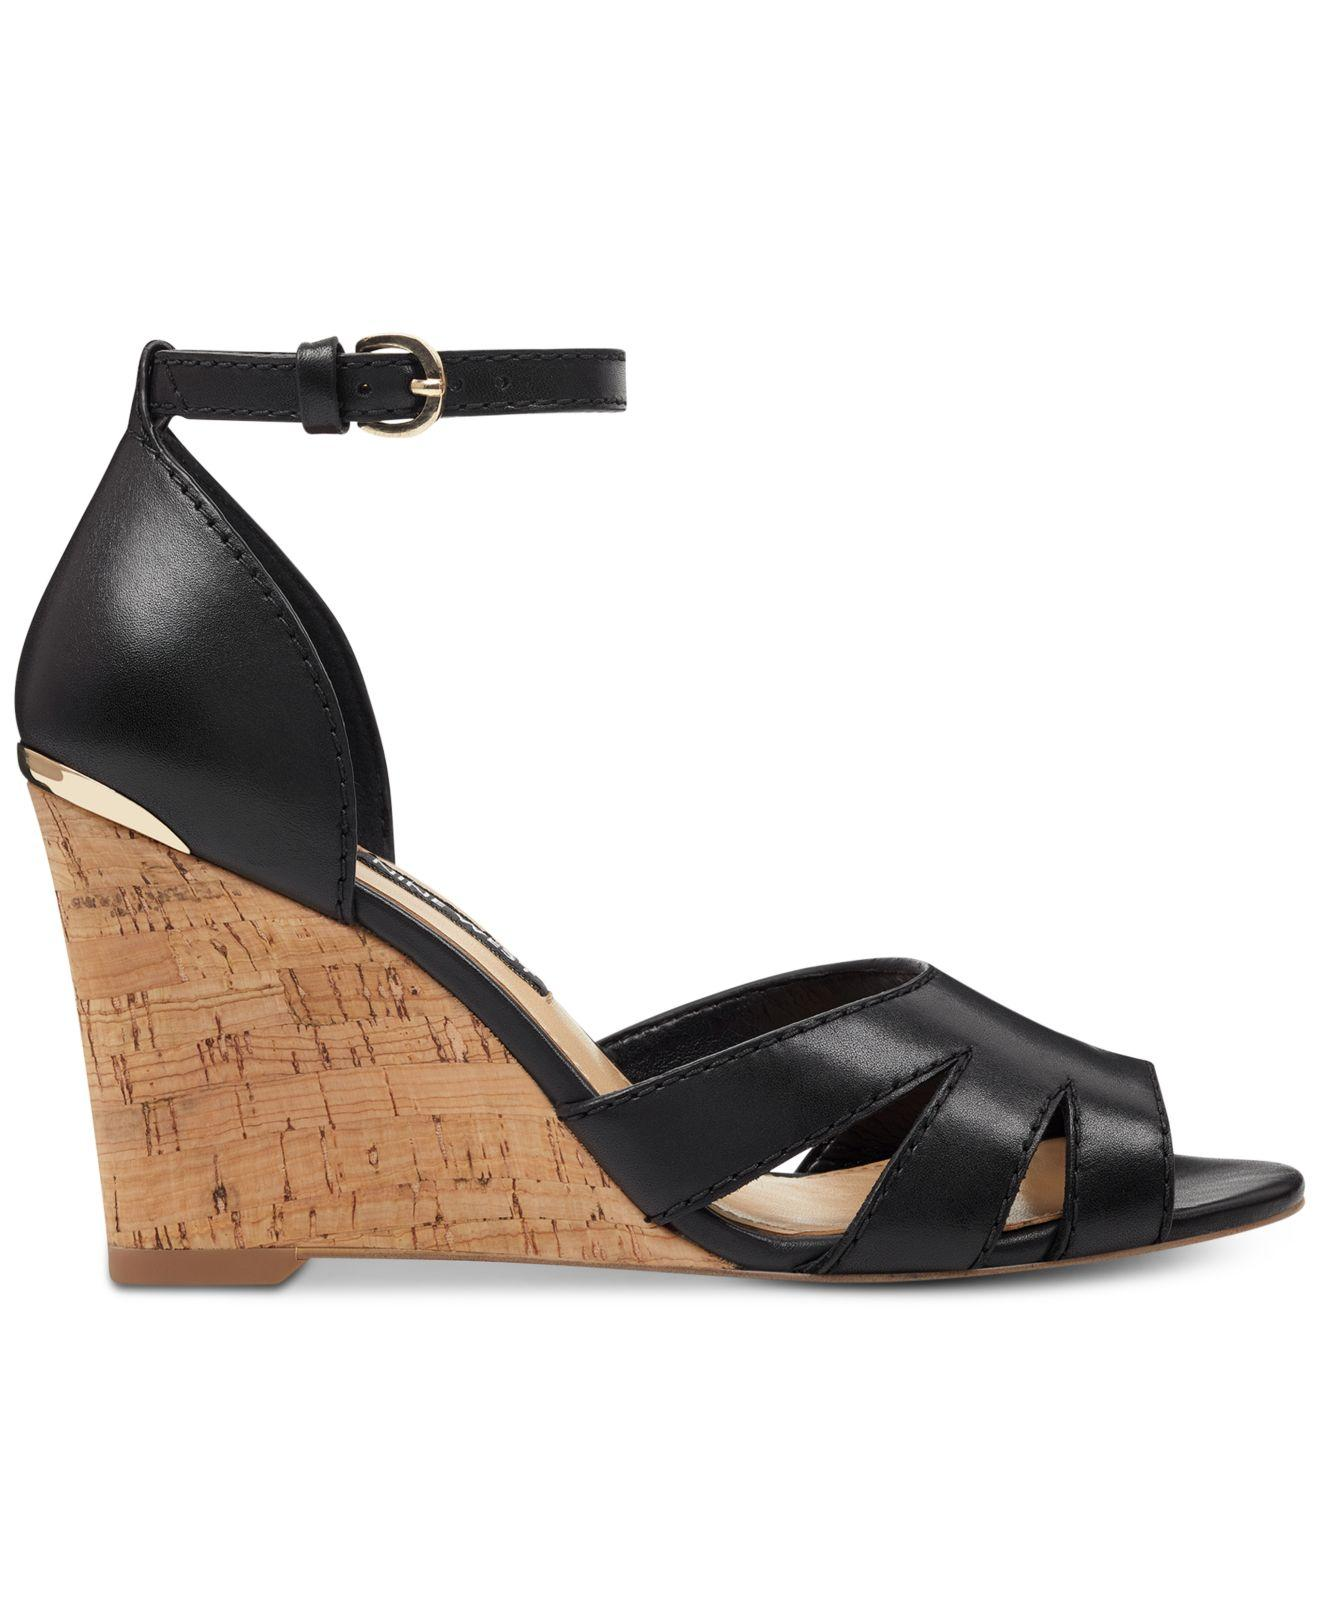 6cafaf25bd Lyst - Nine West Lilly Wedge Sandals in Black